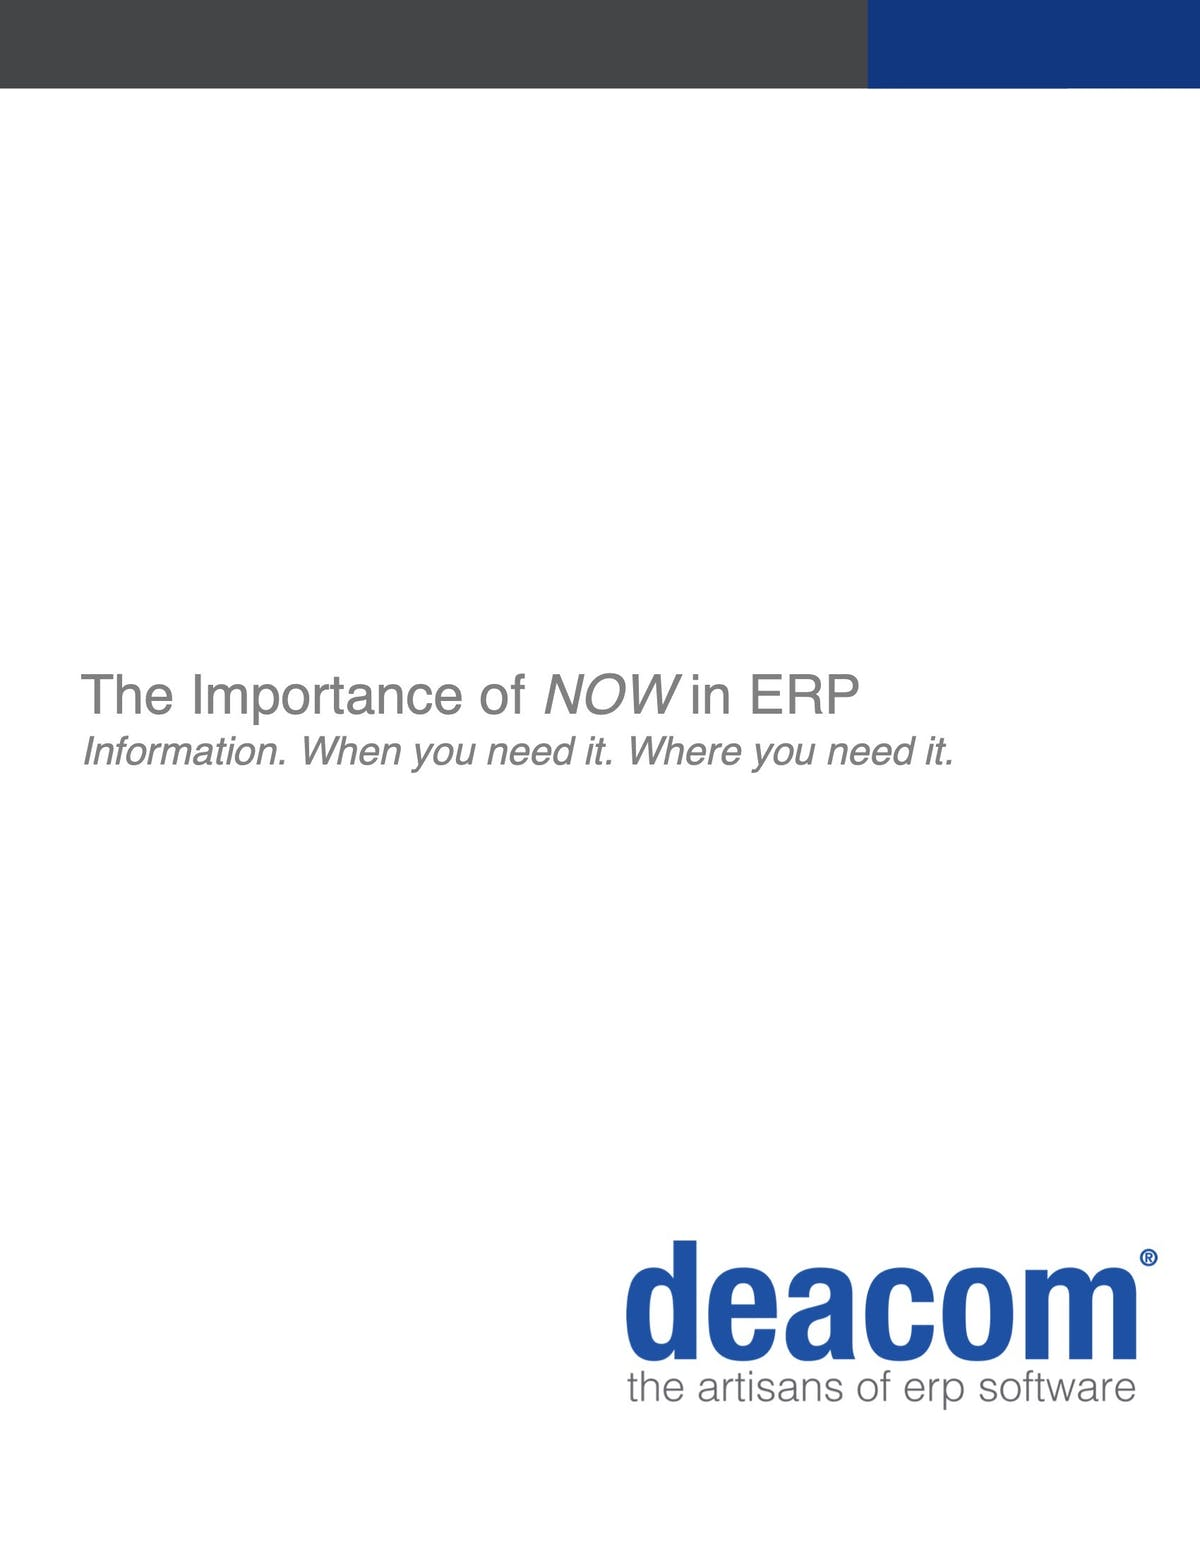 DEACOM ERP White Paper - The Importance of NOW in ERP